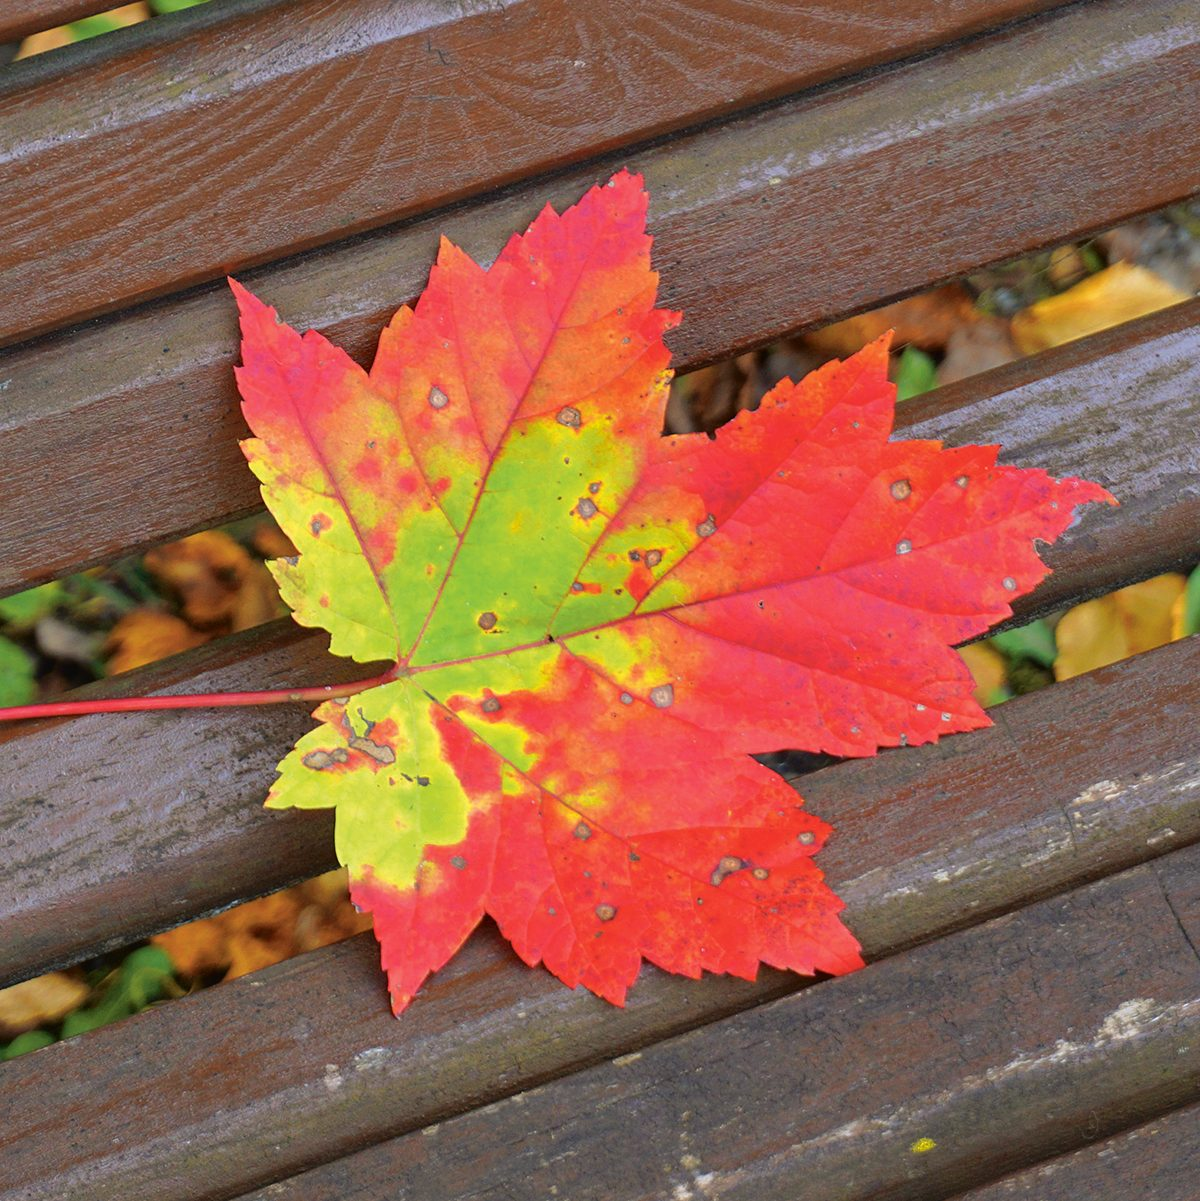 Autumn in Canada - green orange and red maple leaf